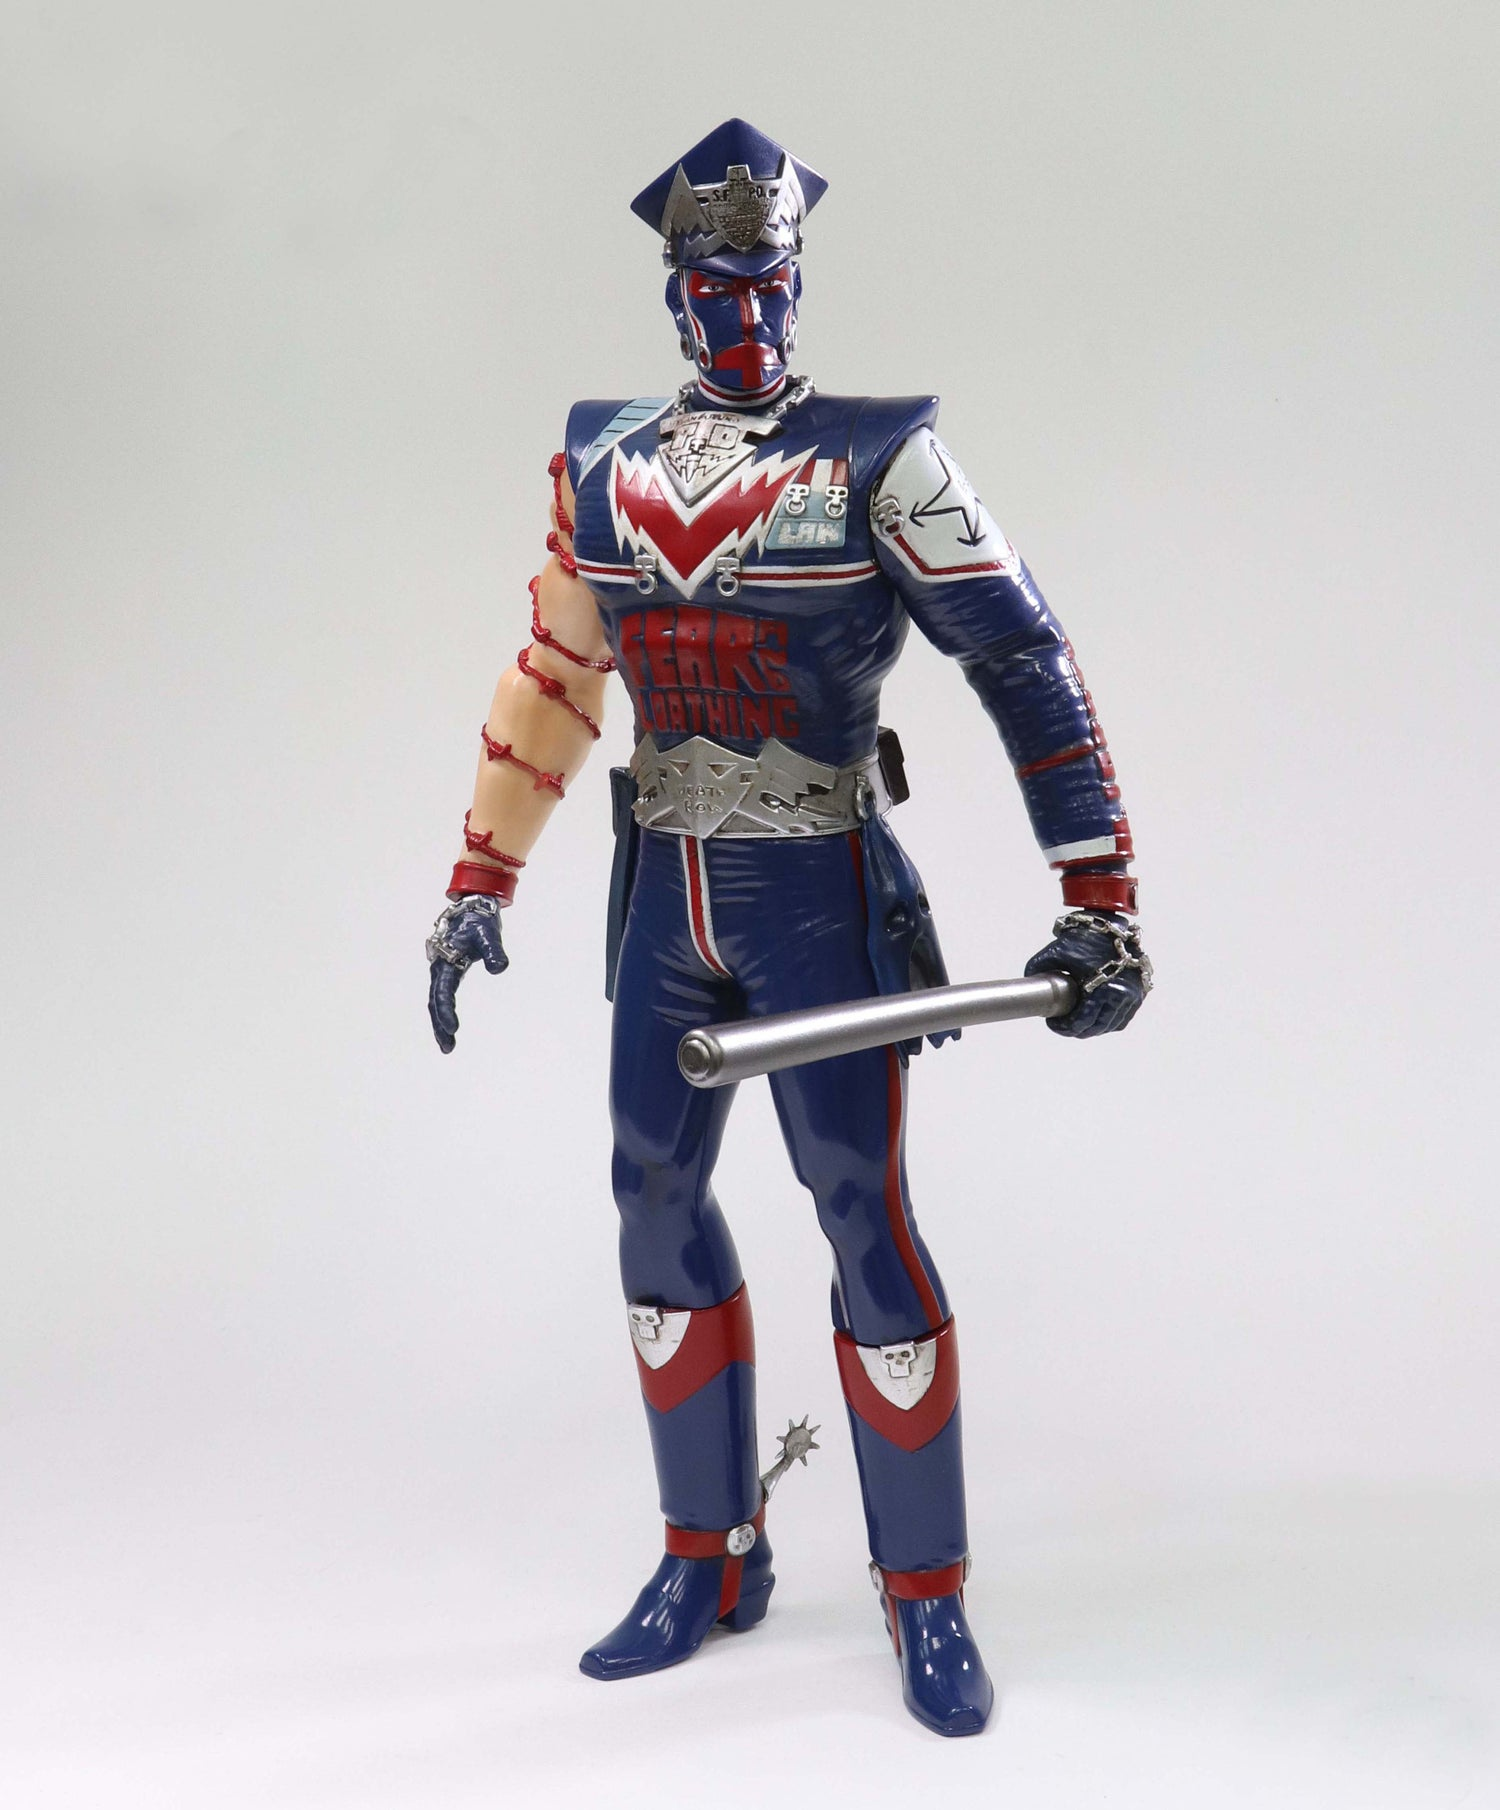 Image of MARSHAL LAW VINYL LTD RUN FIGURE PRE-ORDER